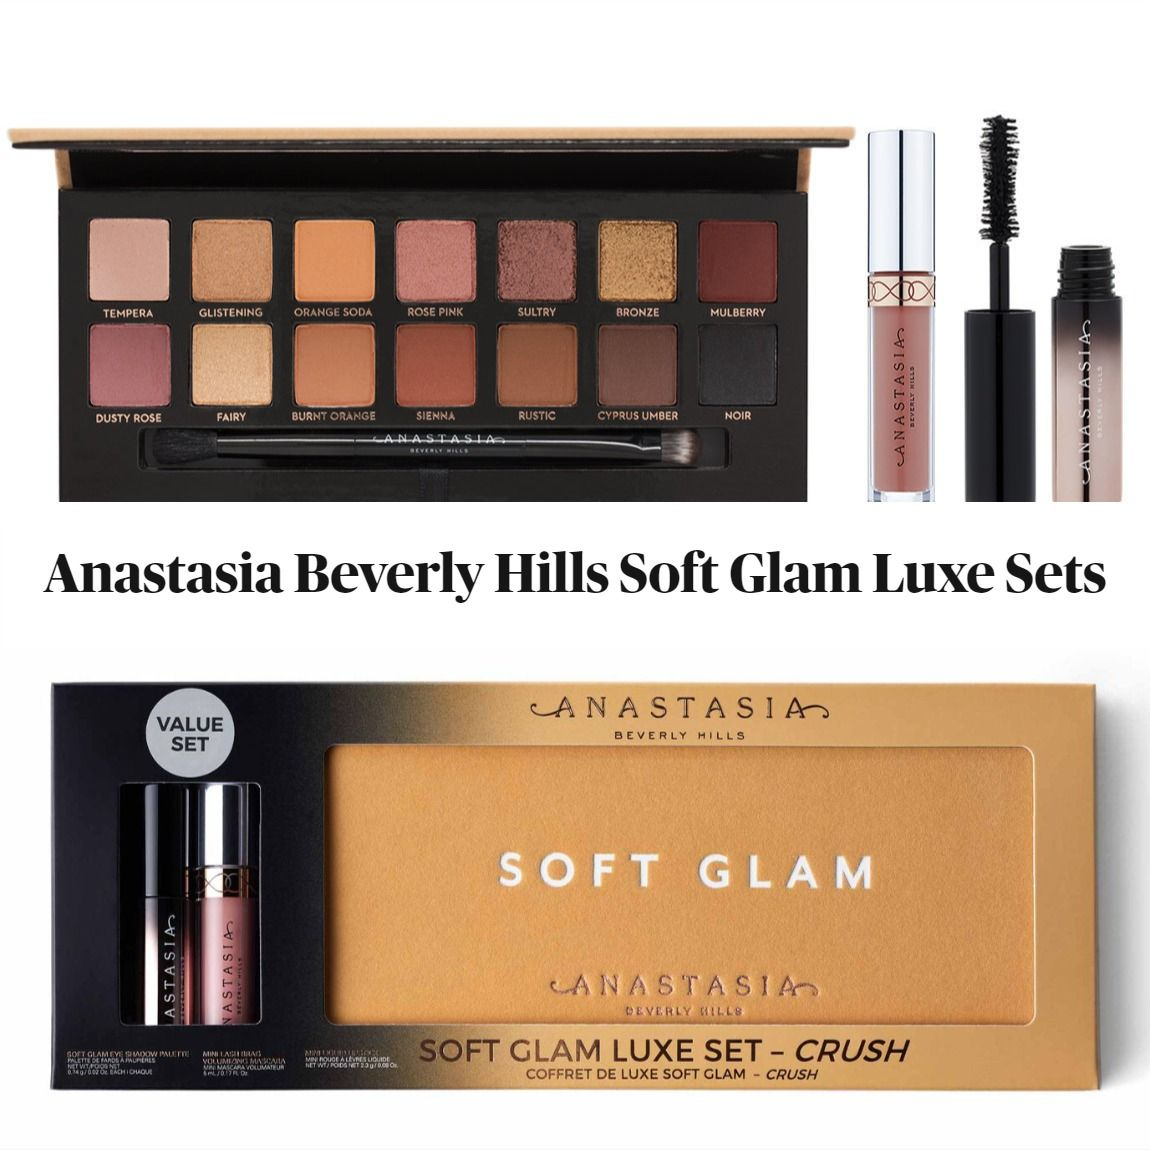 Anastasia Beverly Hills Soft Glam Luxe Sets